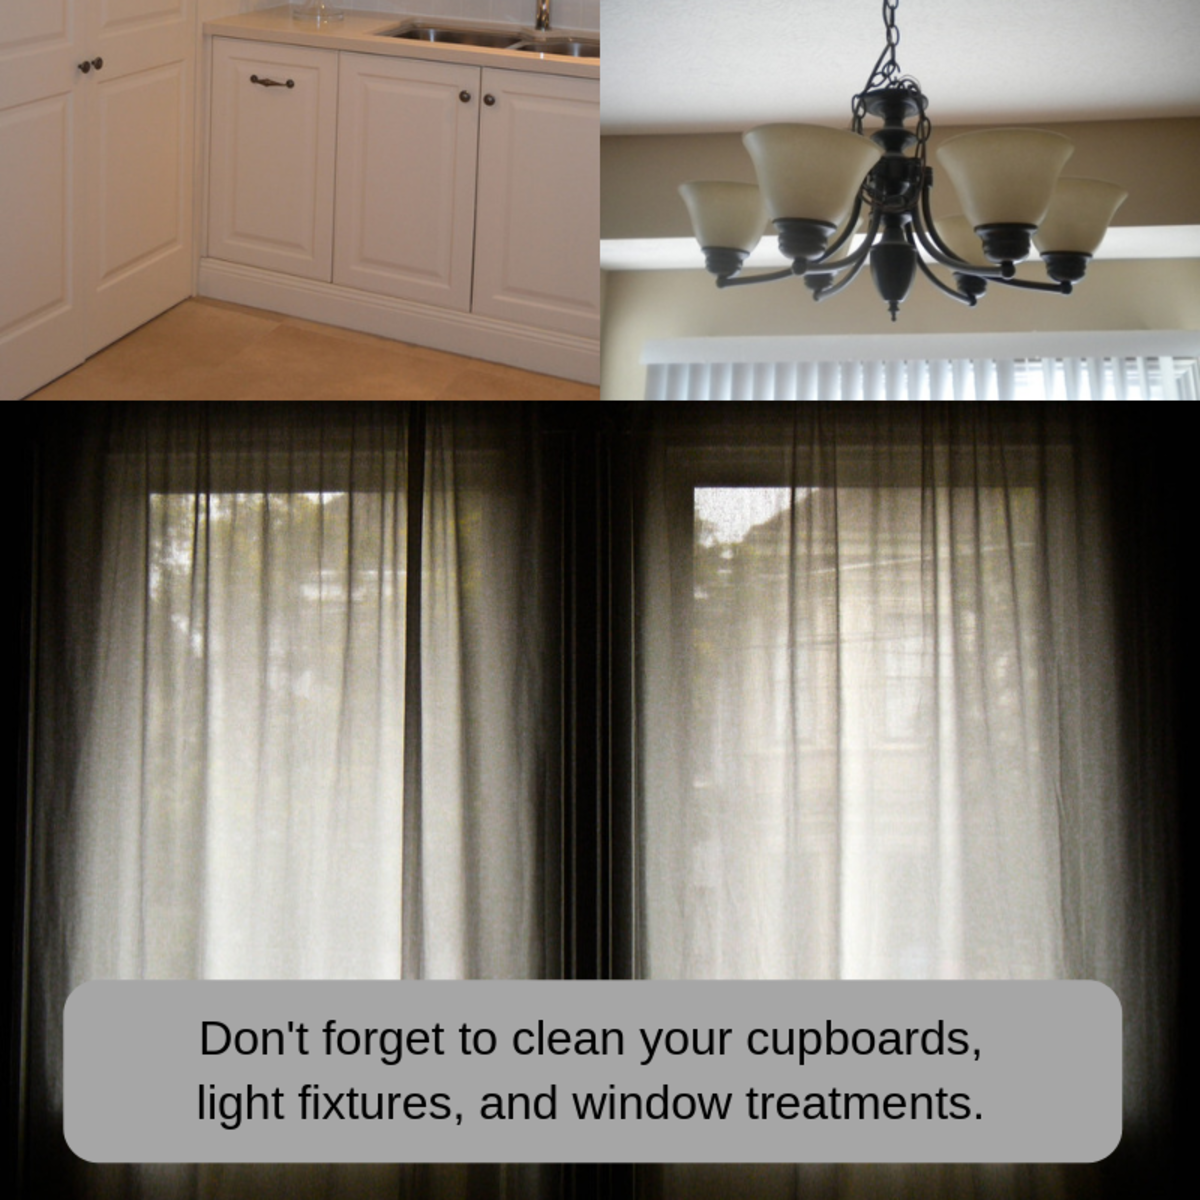 Even things like light fixtures and window treatments can absorb odors, so make sure to clean all the furnishings and furniture in your house.